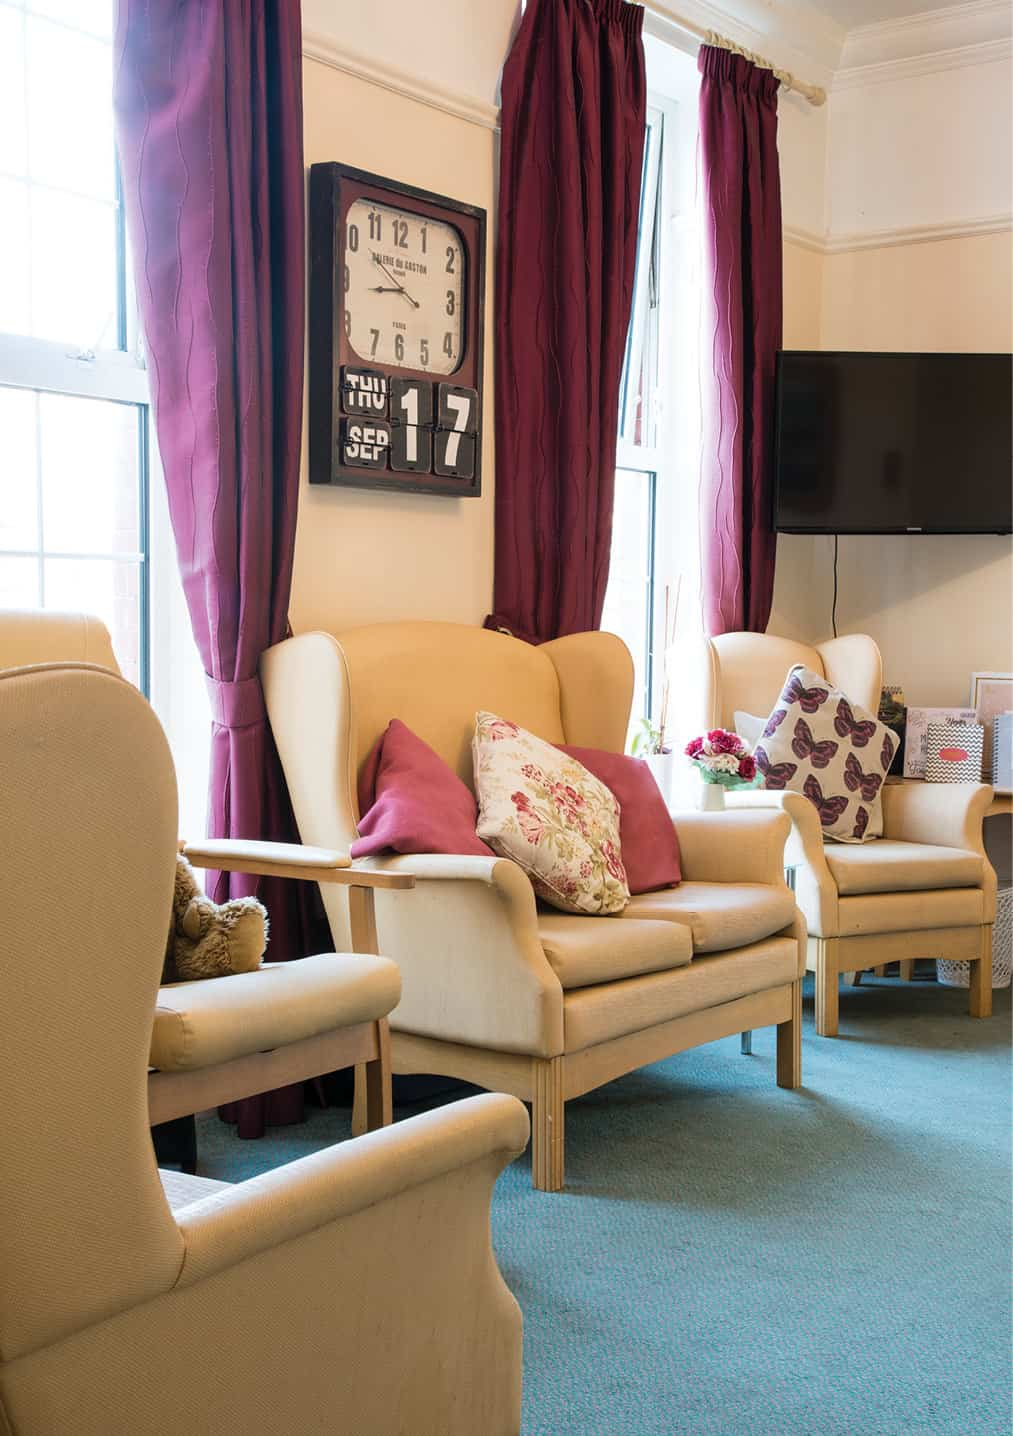 Accommodation - St Vincent's Living area